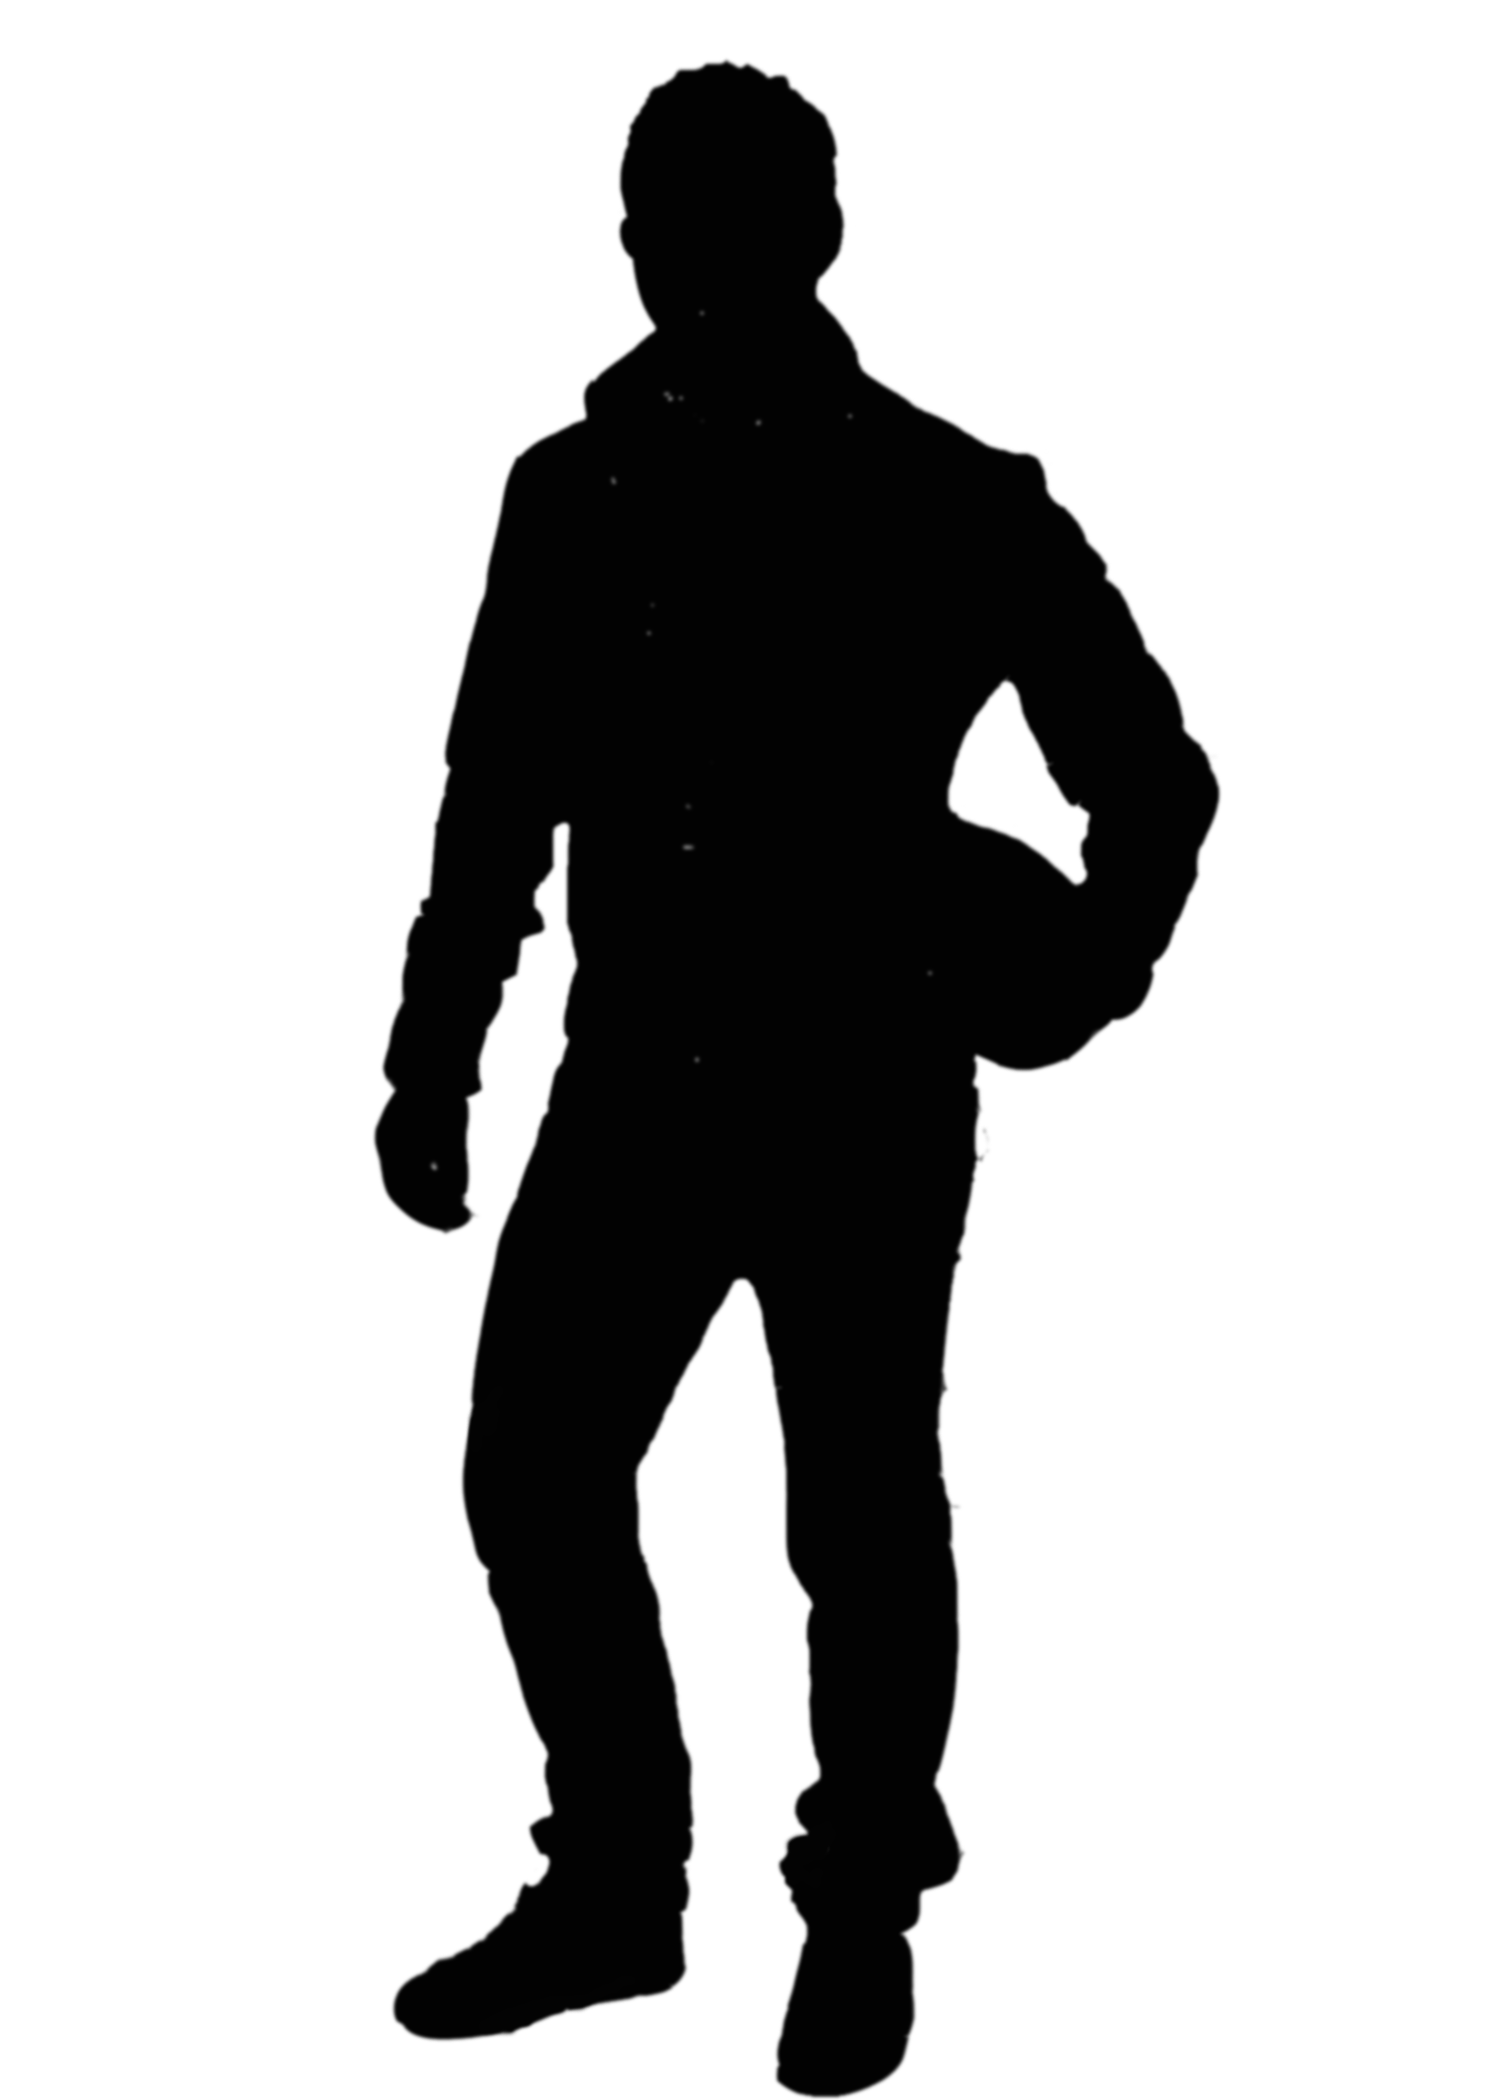 Rider silhouette at getdrawings. Motorcycle clipart motorcycle driver